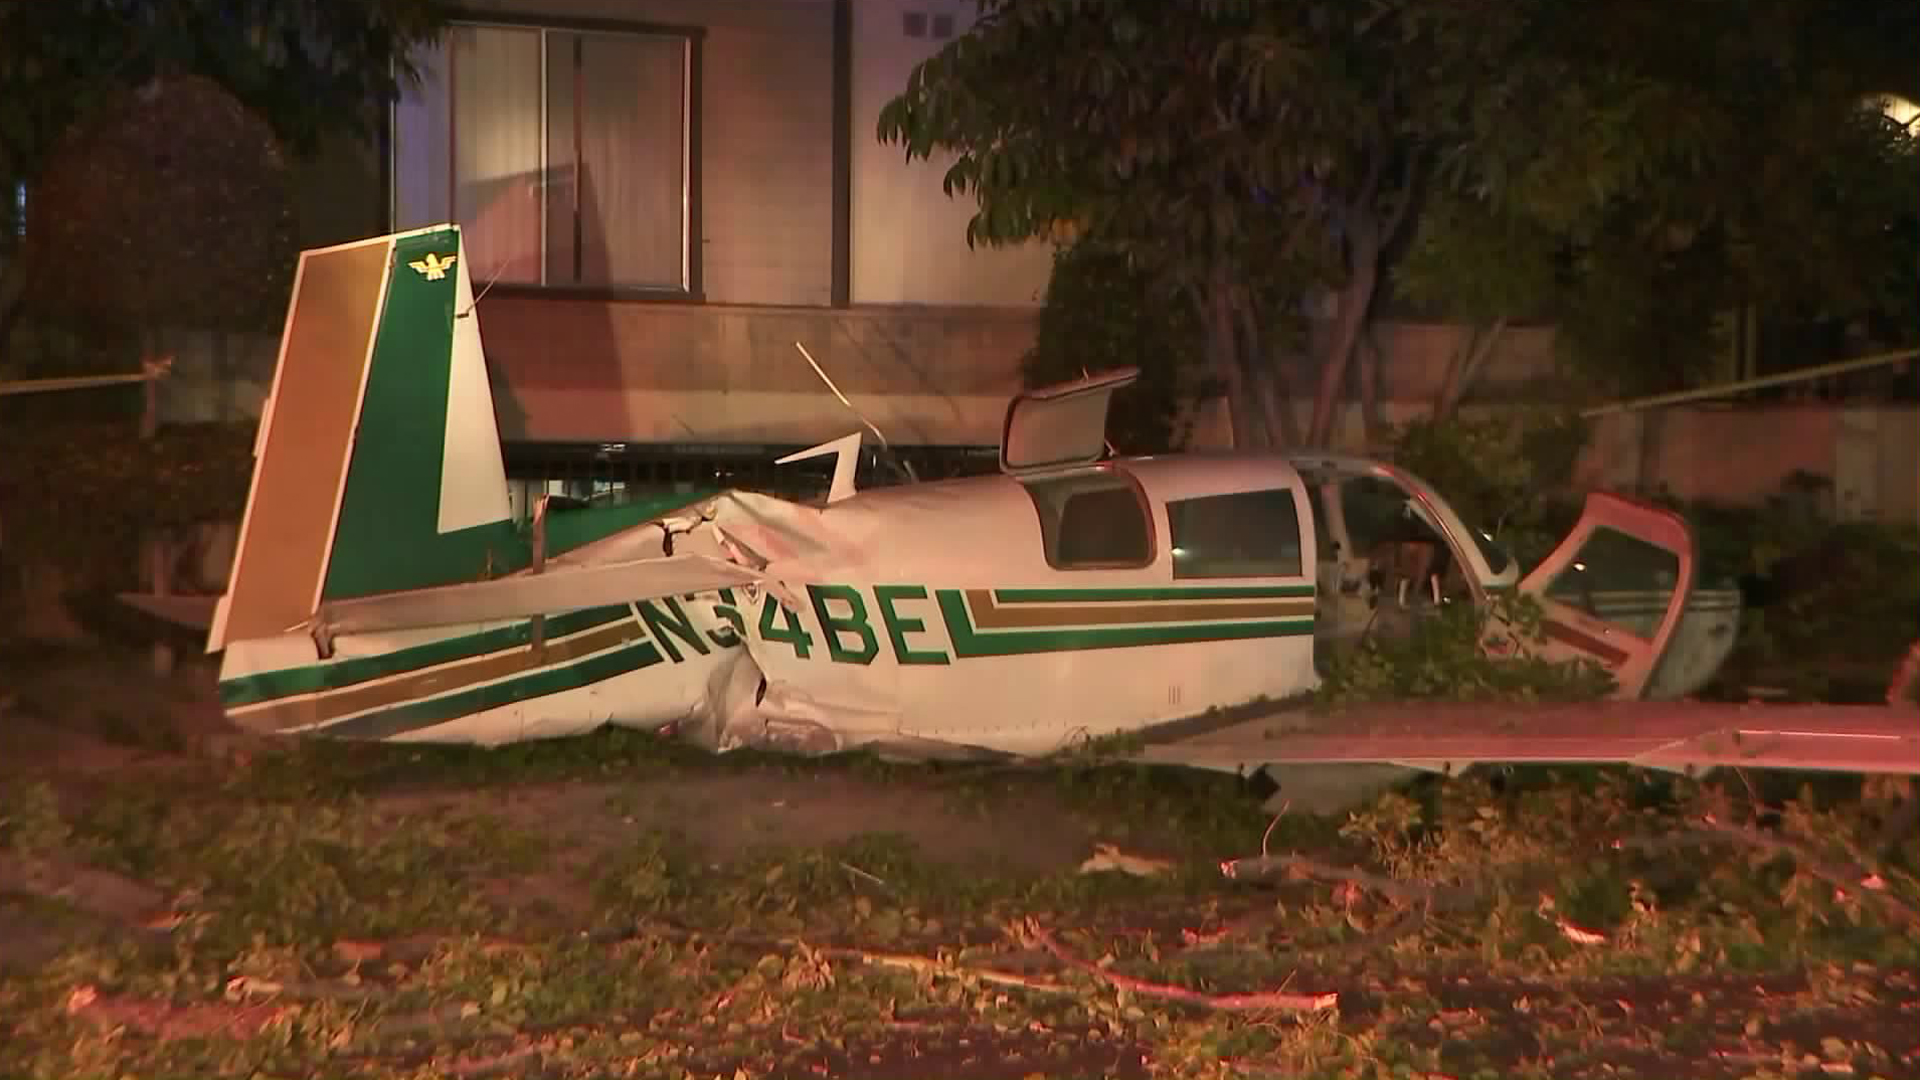 A small plane crash landed in a residential area of Glendale on Sept. 22, 2017. Its two occupants sustained only minor injuries. (Credit: KTLA)